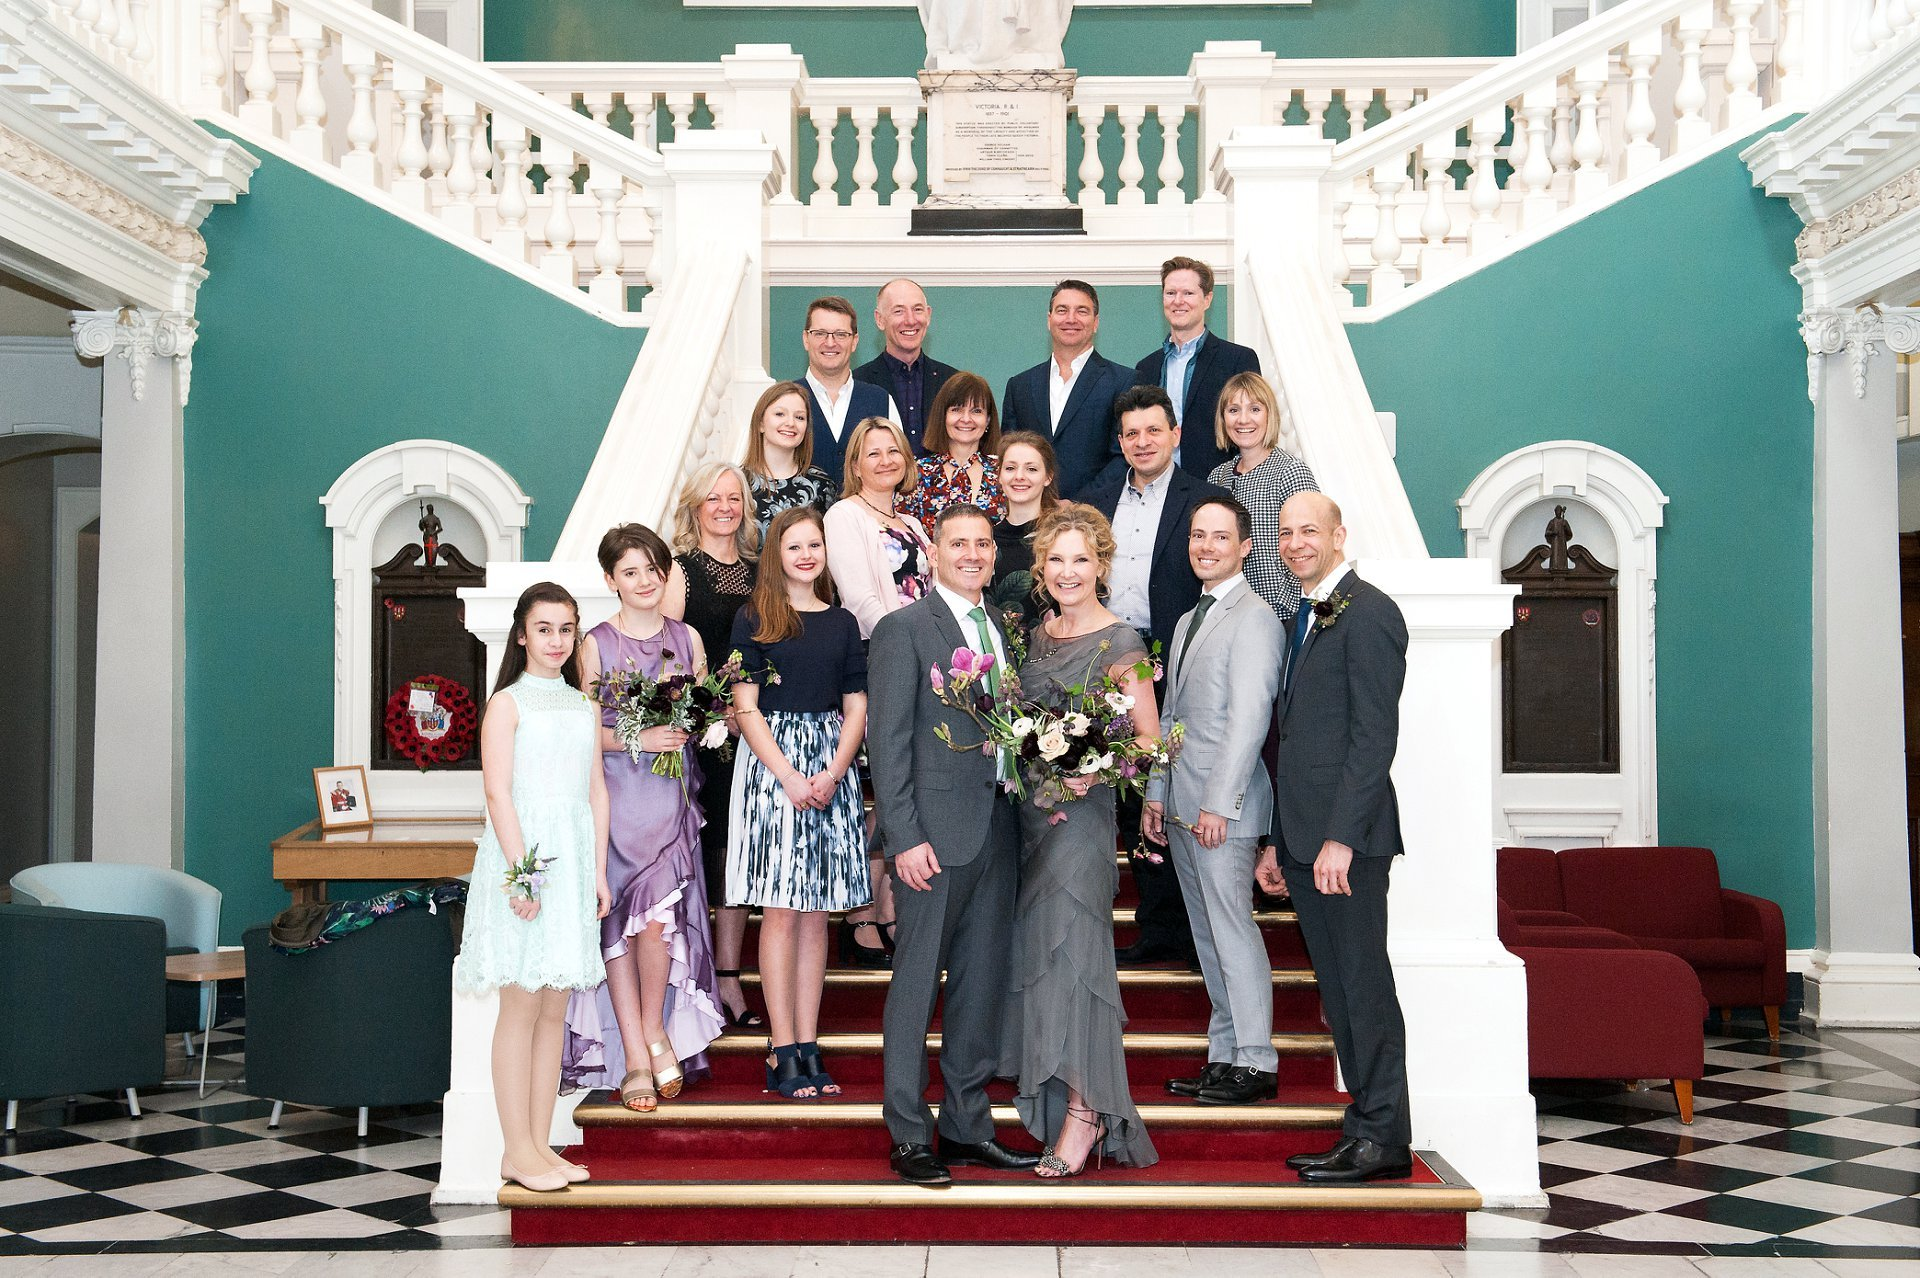 Wedding photography group on the red staircase of the Victoria Hall, Woolwich Town Hall, Woolwich Town Hall